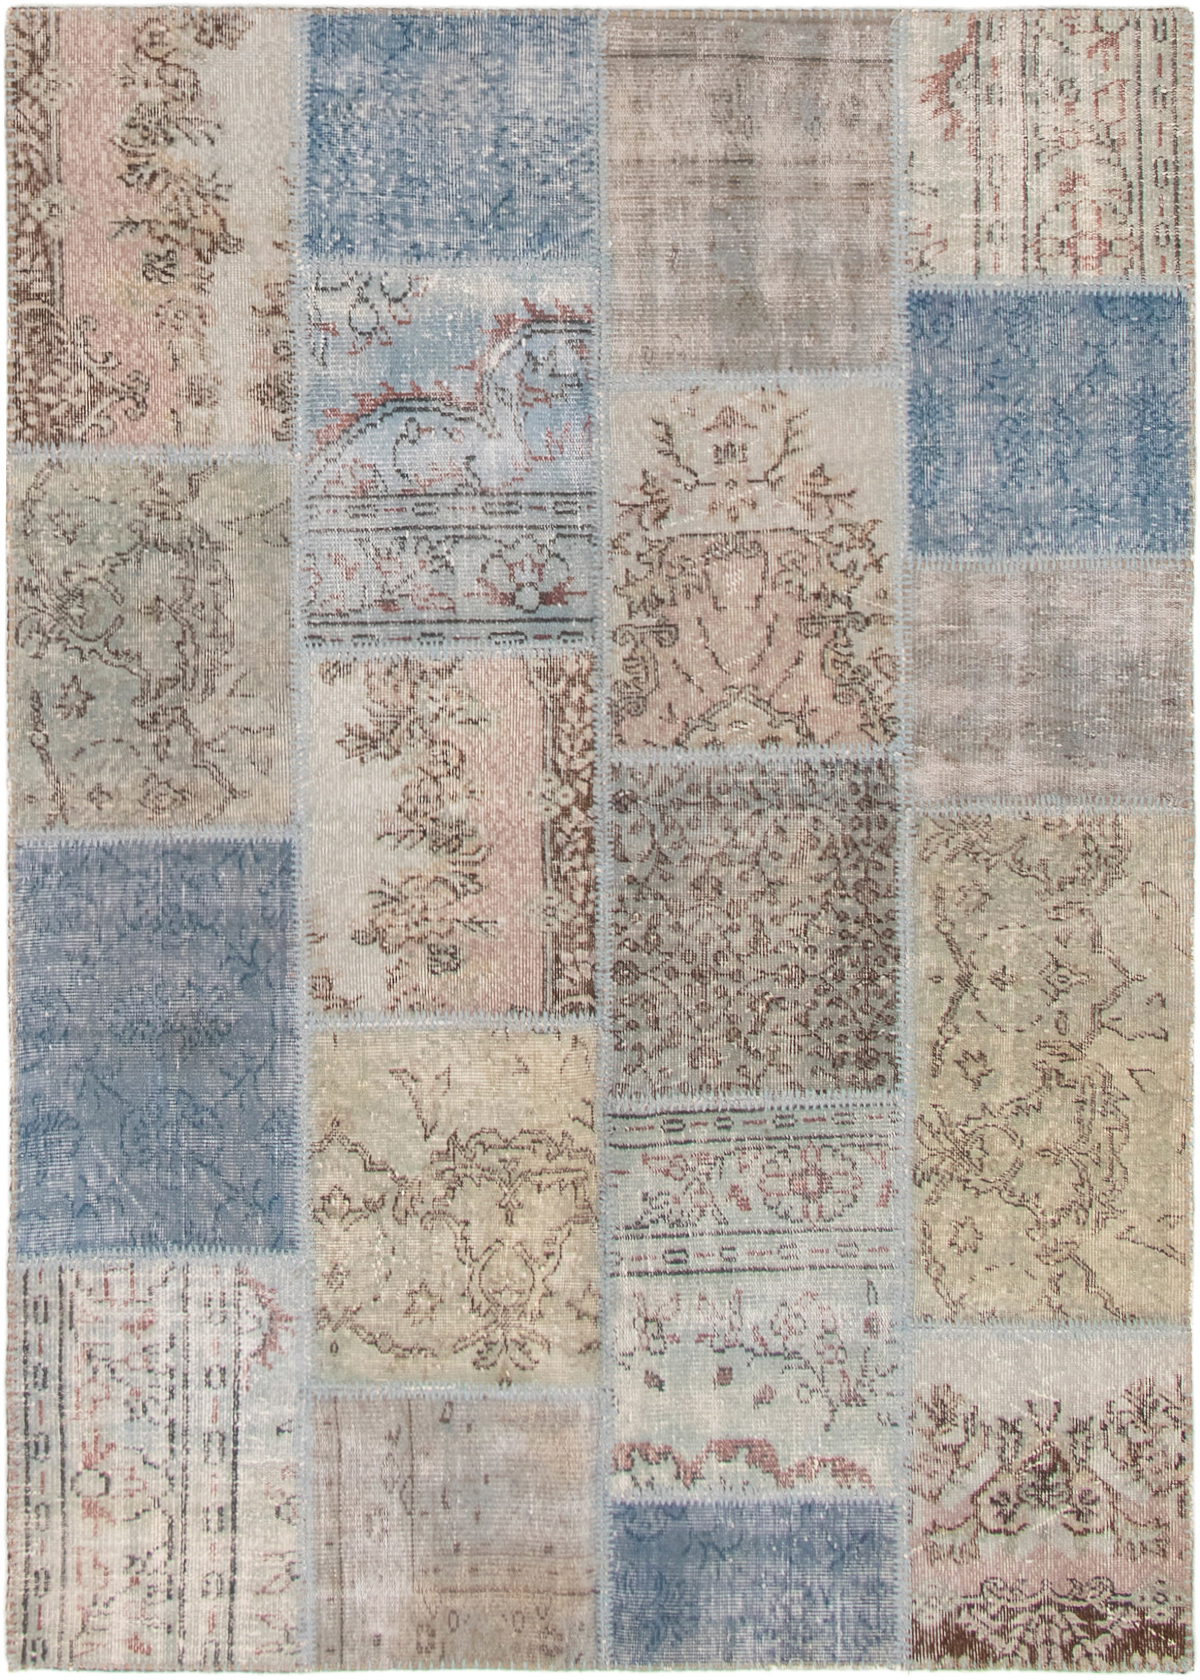 """Hand-knotted Color Transition Patch Khaki, Navy Blue Wool Rug 5'3"""" x 7'5"""" Size: 5'3"""" x 7'5"""""""